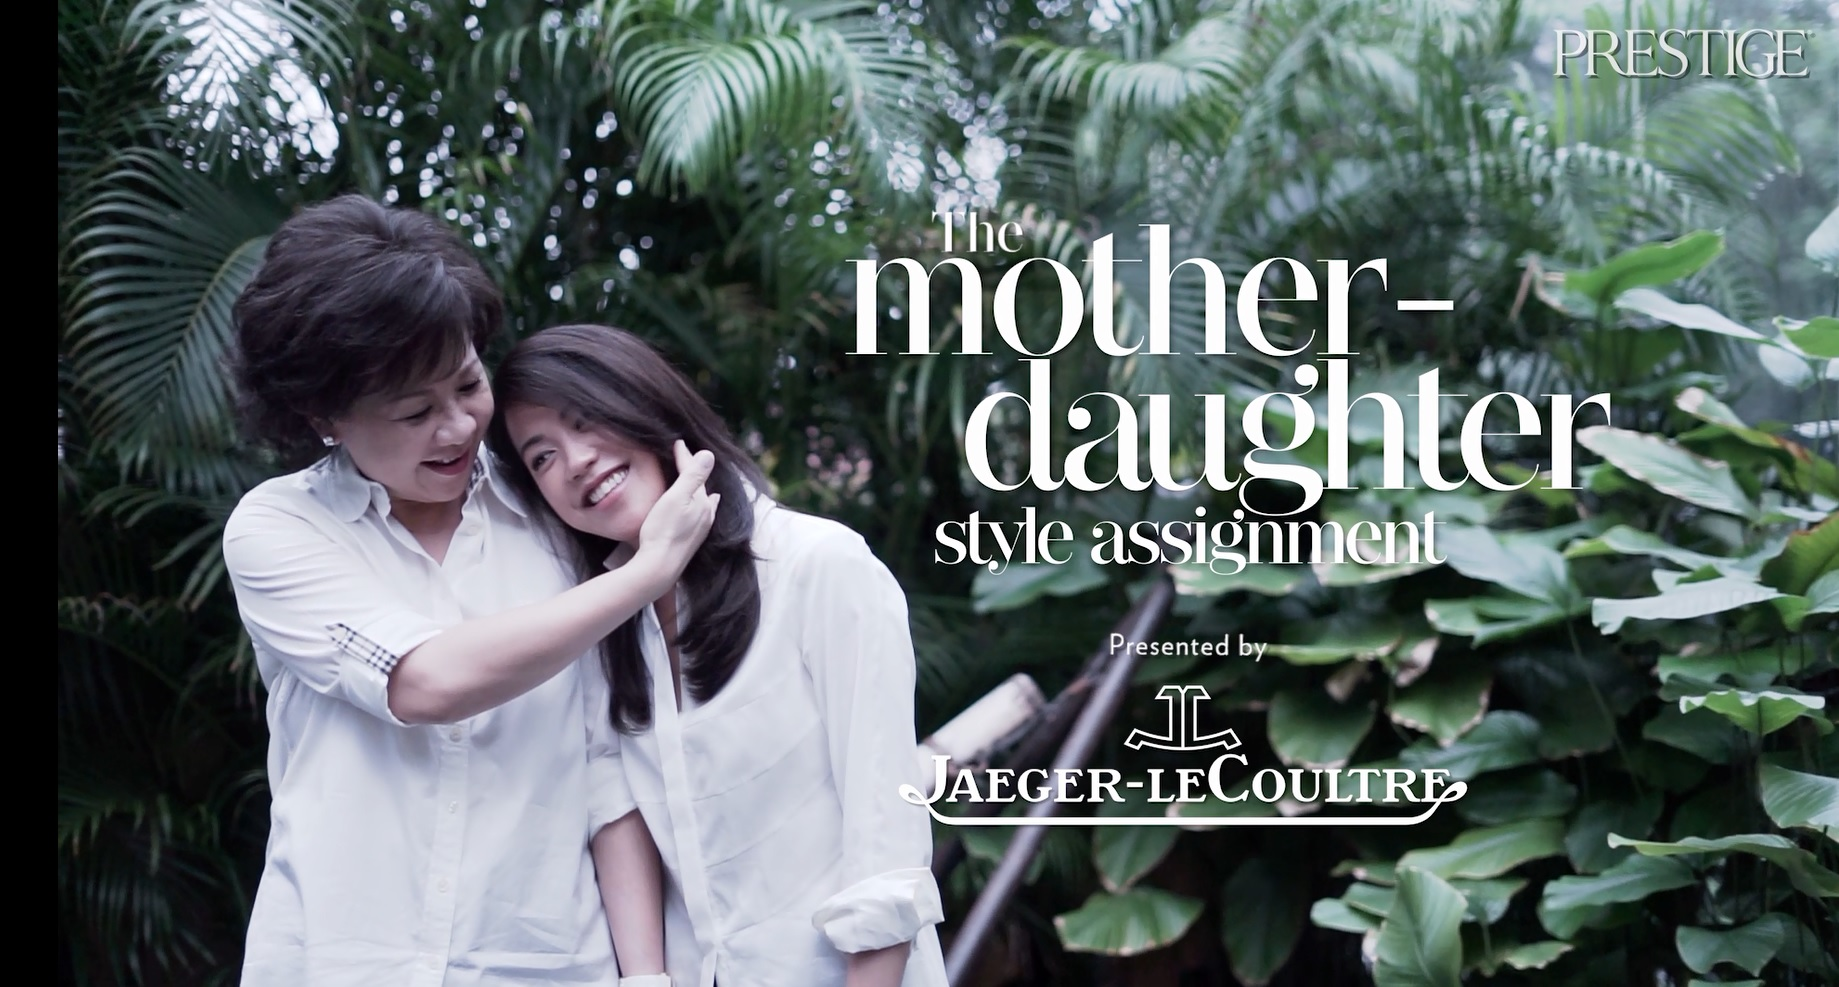 The Jaeger-LeCoultre Mother-Daughter Style Assignment – Ow Pui Yee & Carmen Ow